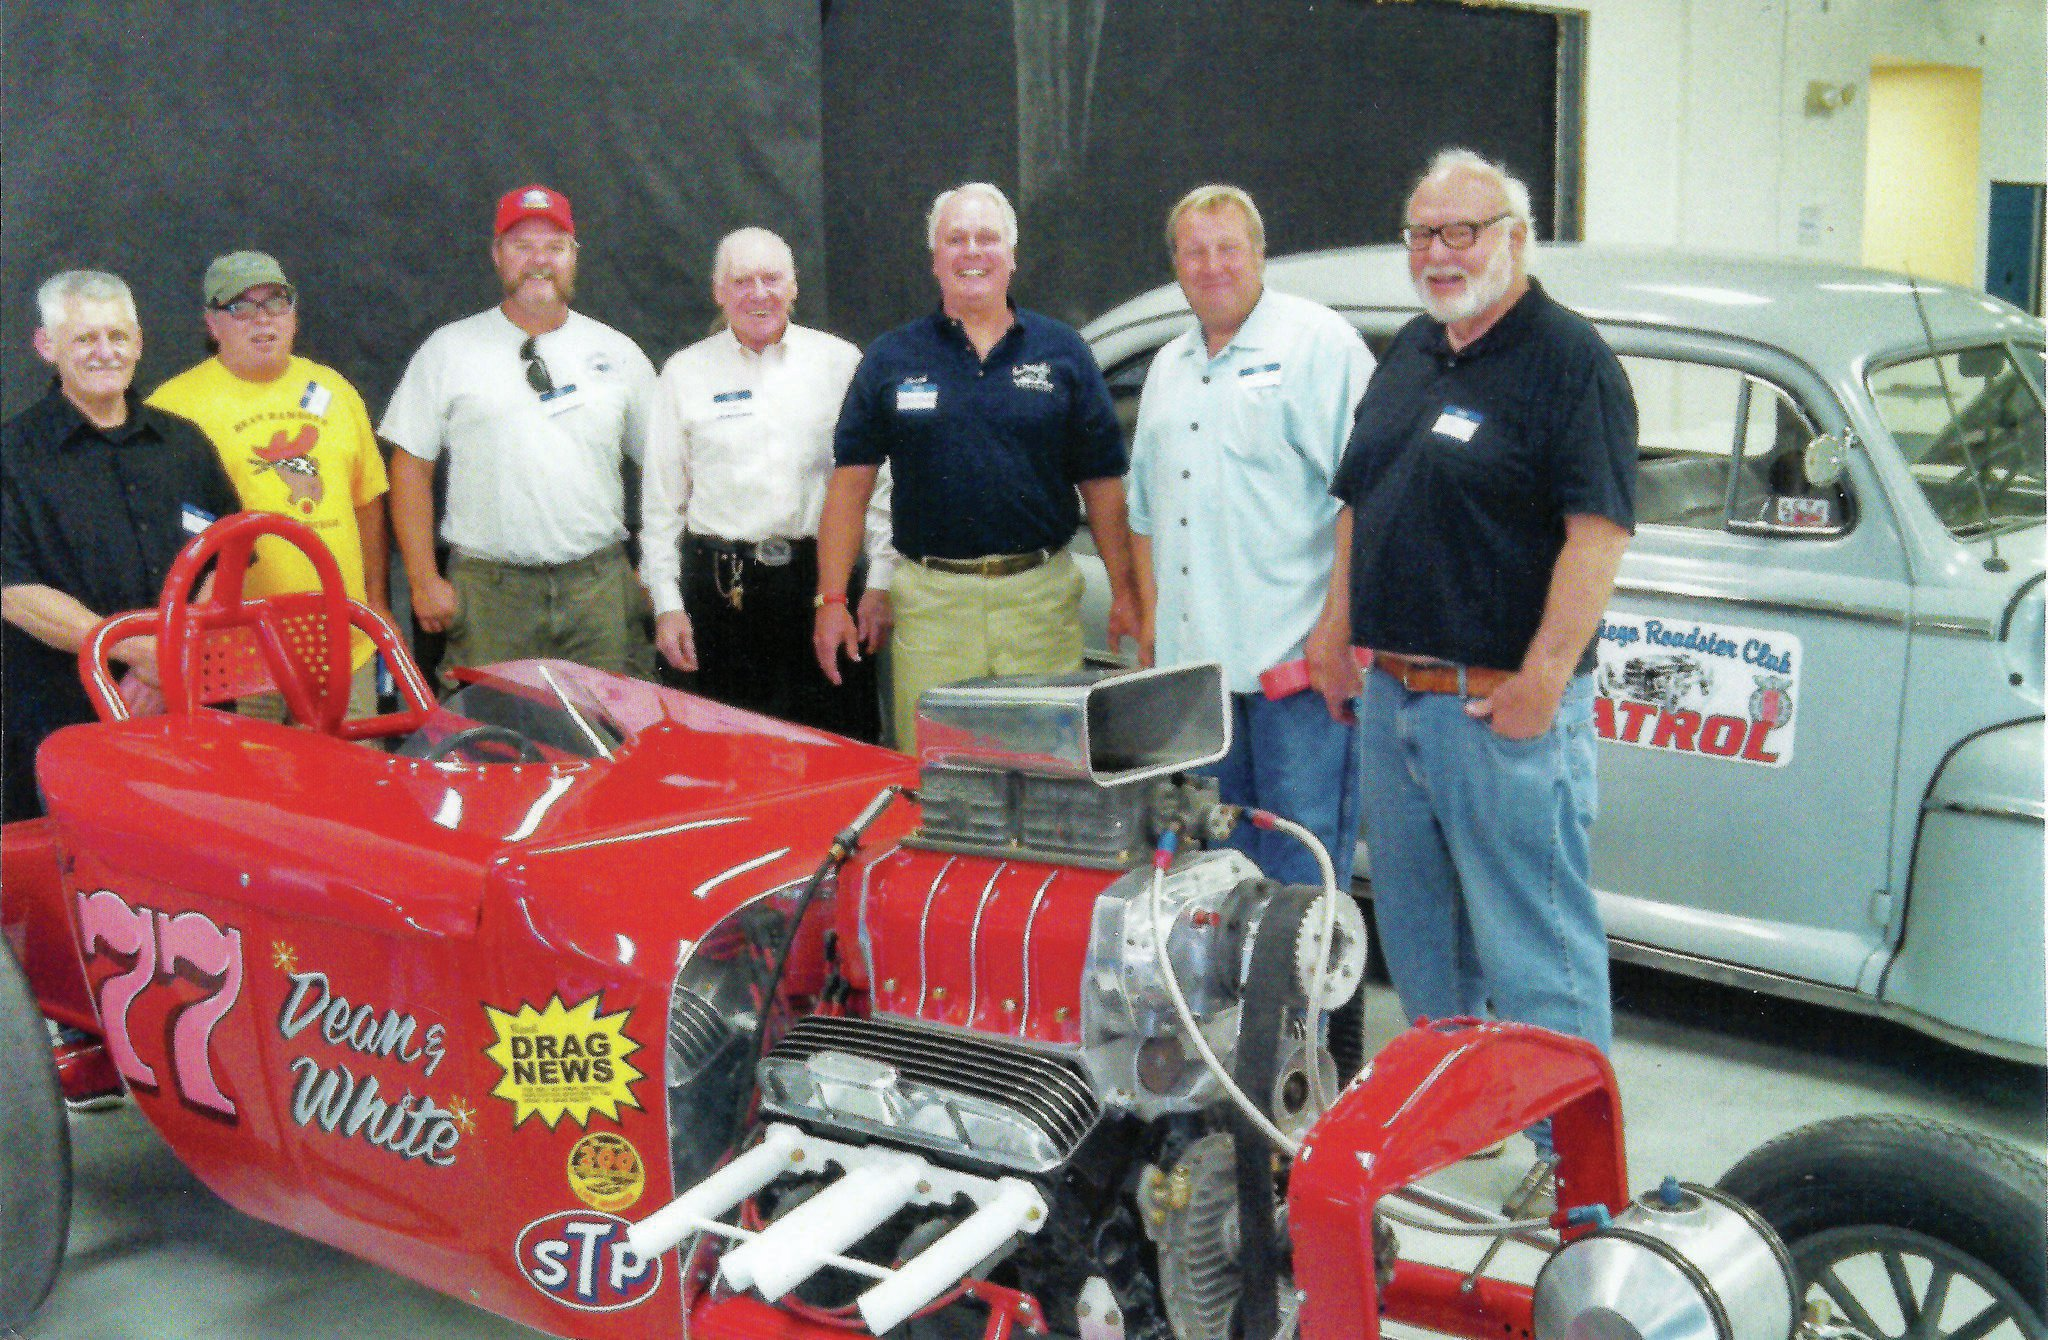 The altered's unveiling took place at the San Diego Roadster Club's annual banquet last spring. Many of those who had a hand in its rebirth were there to celebrate. From left: Rick Peterson, Jeff Arnett, Bill Lattin, Richard Lux, Chuck Edwald, Shawn Killion, and Jim Lattin.